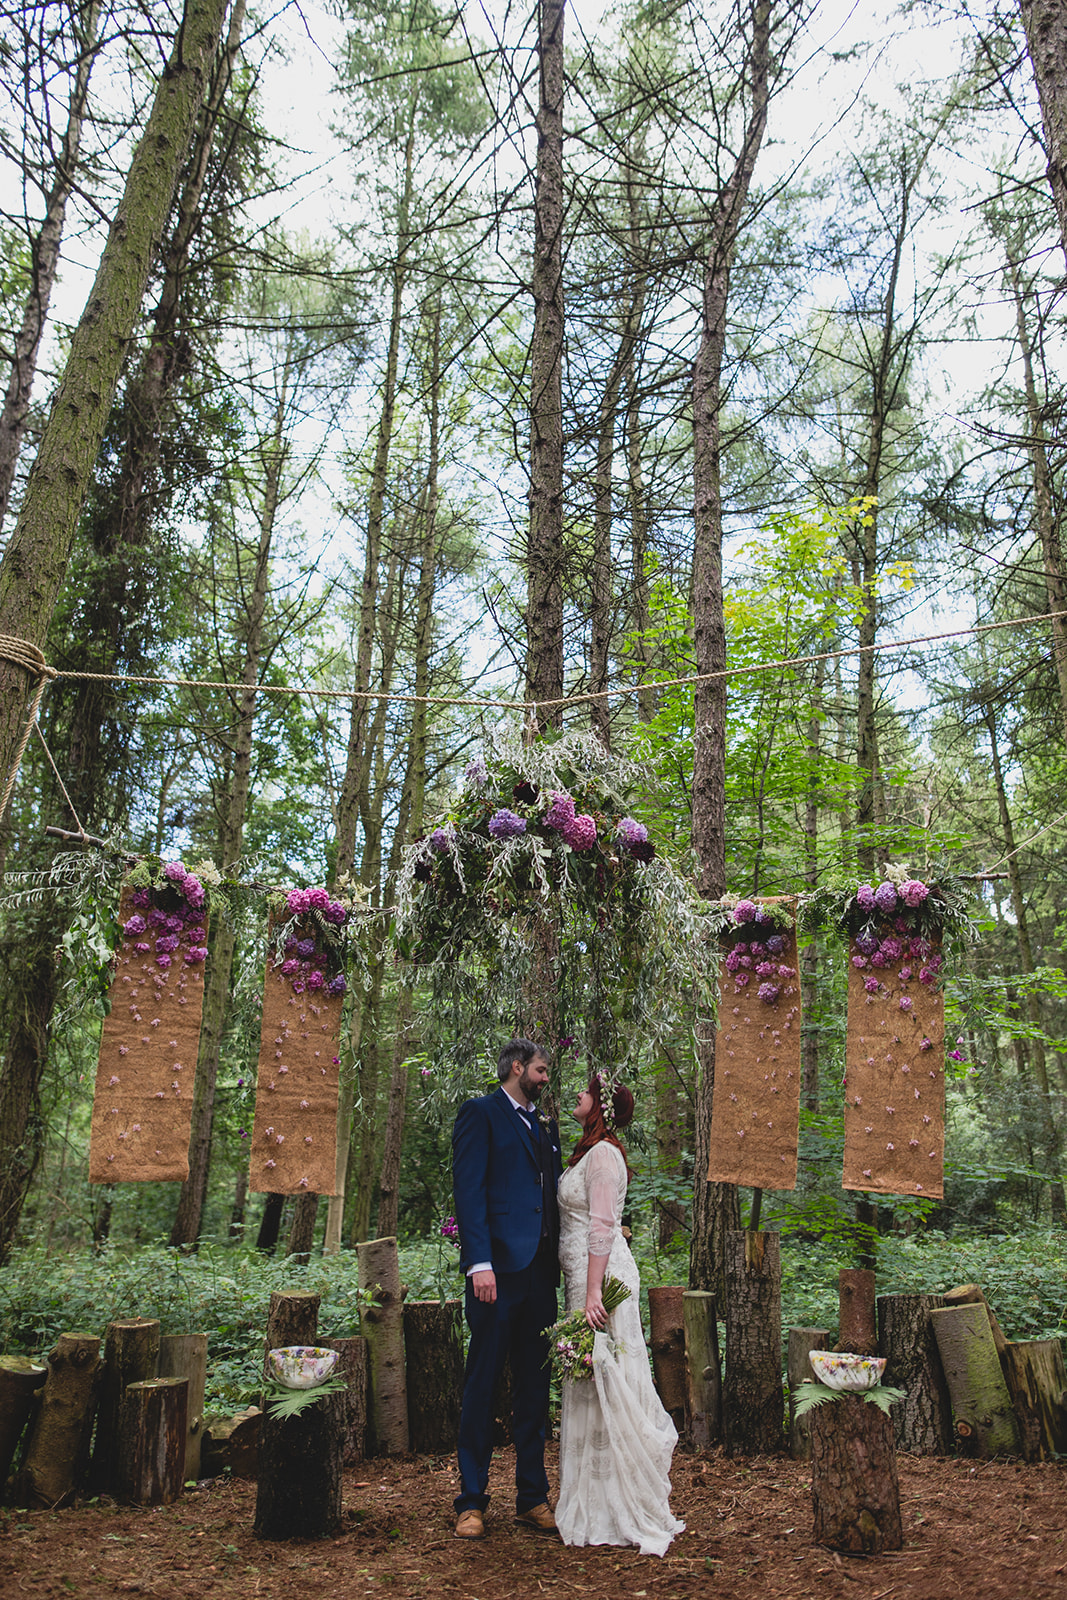 a bride and groom stand under a rustic and flowery alter in the woods. camp katur wedding north yorkshire tipi wedding venue glamping. stop motion wedding films uk